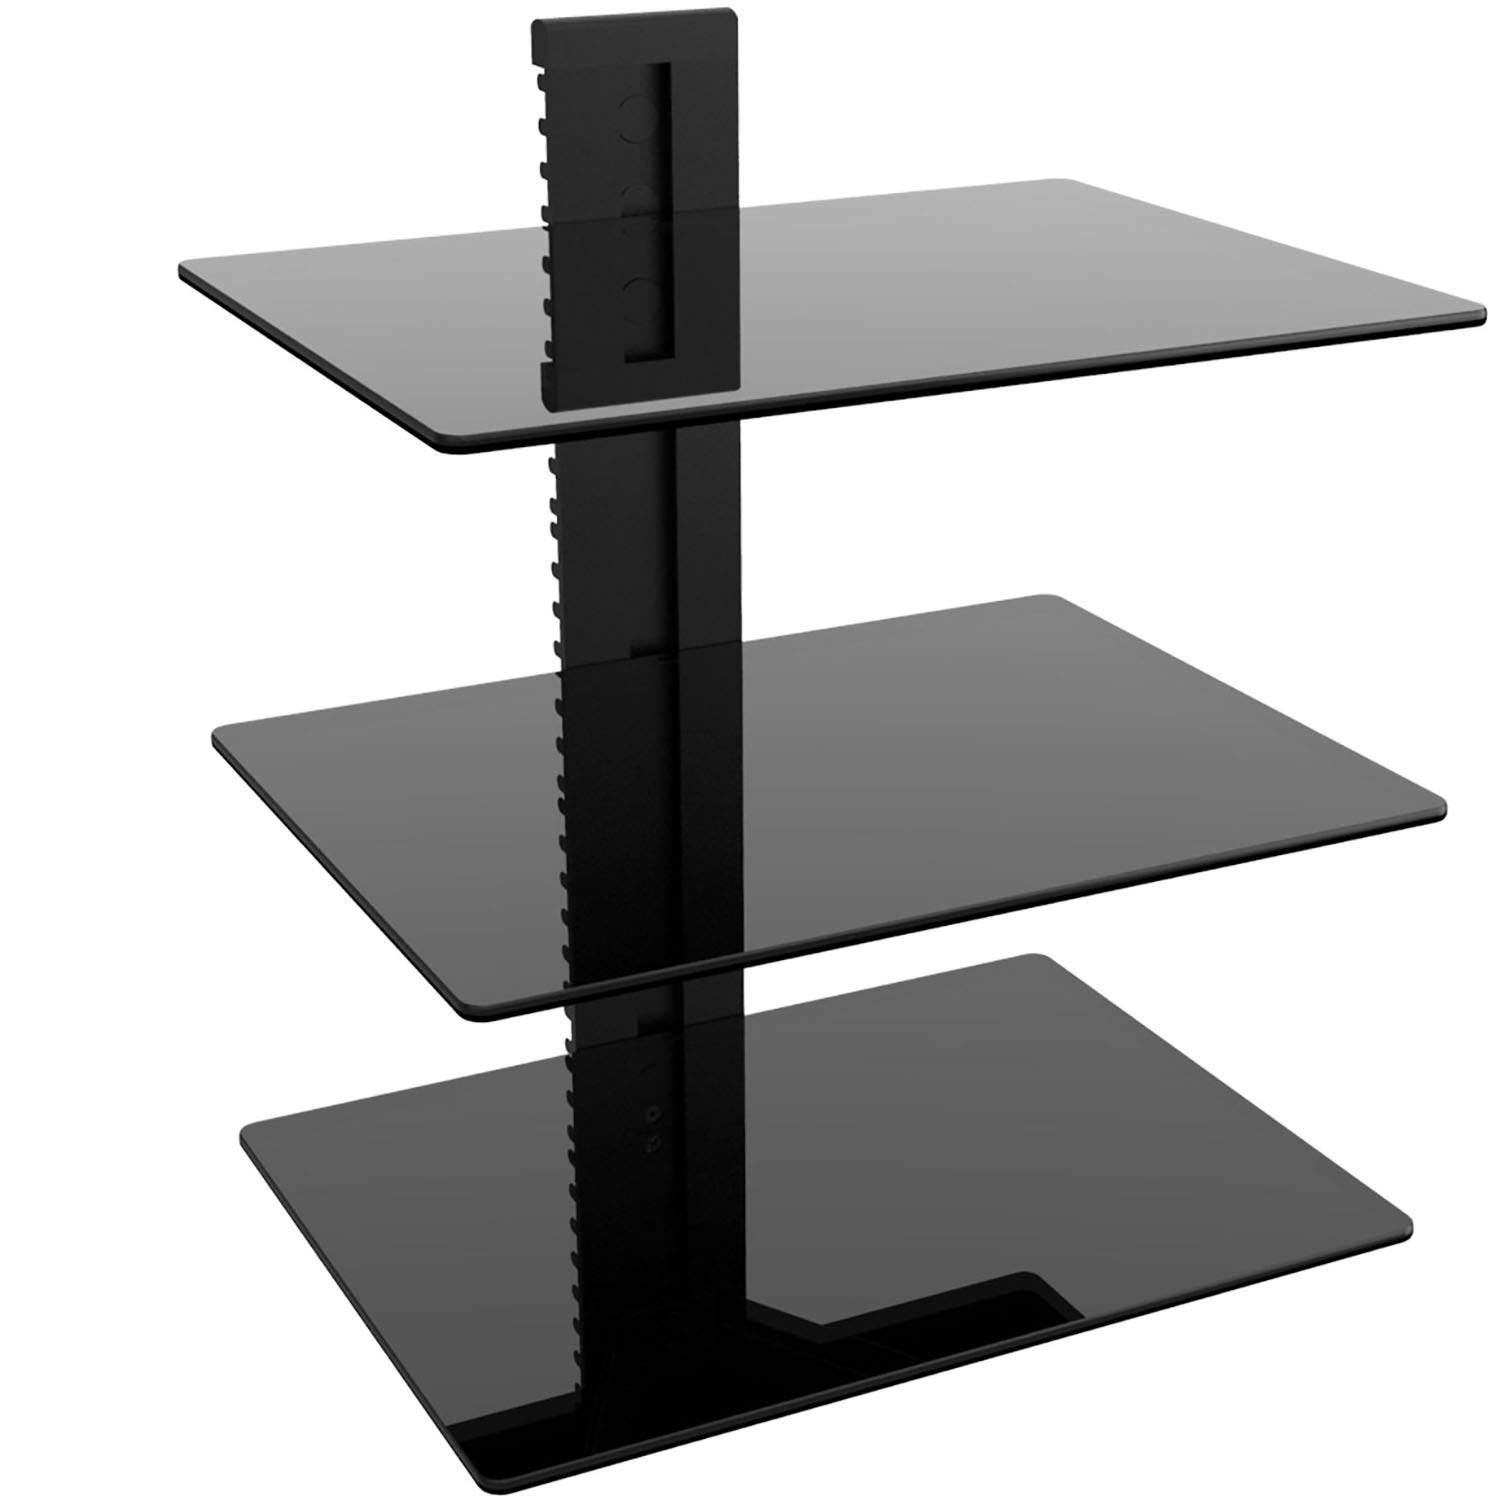 WALI Floating Wall Mounted Shelf with Strengthened Tempered Glasses for DVD Players, Cable Boxes, Games Consoles, TV Accessories (CS303), 3 Shelves, Black by WALI